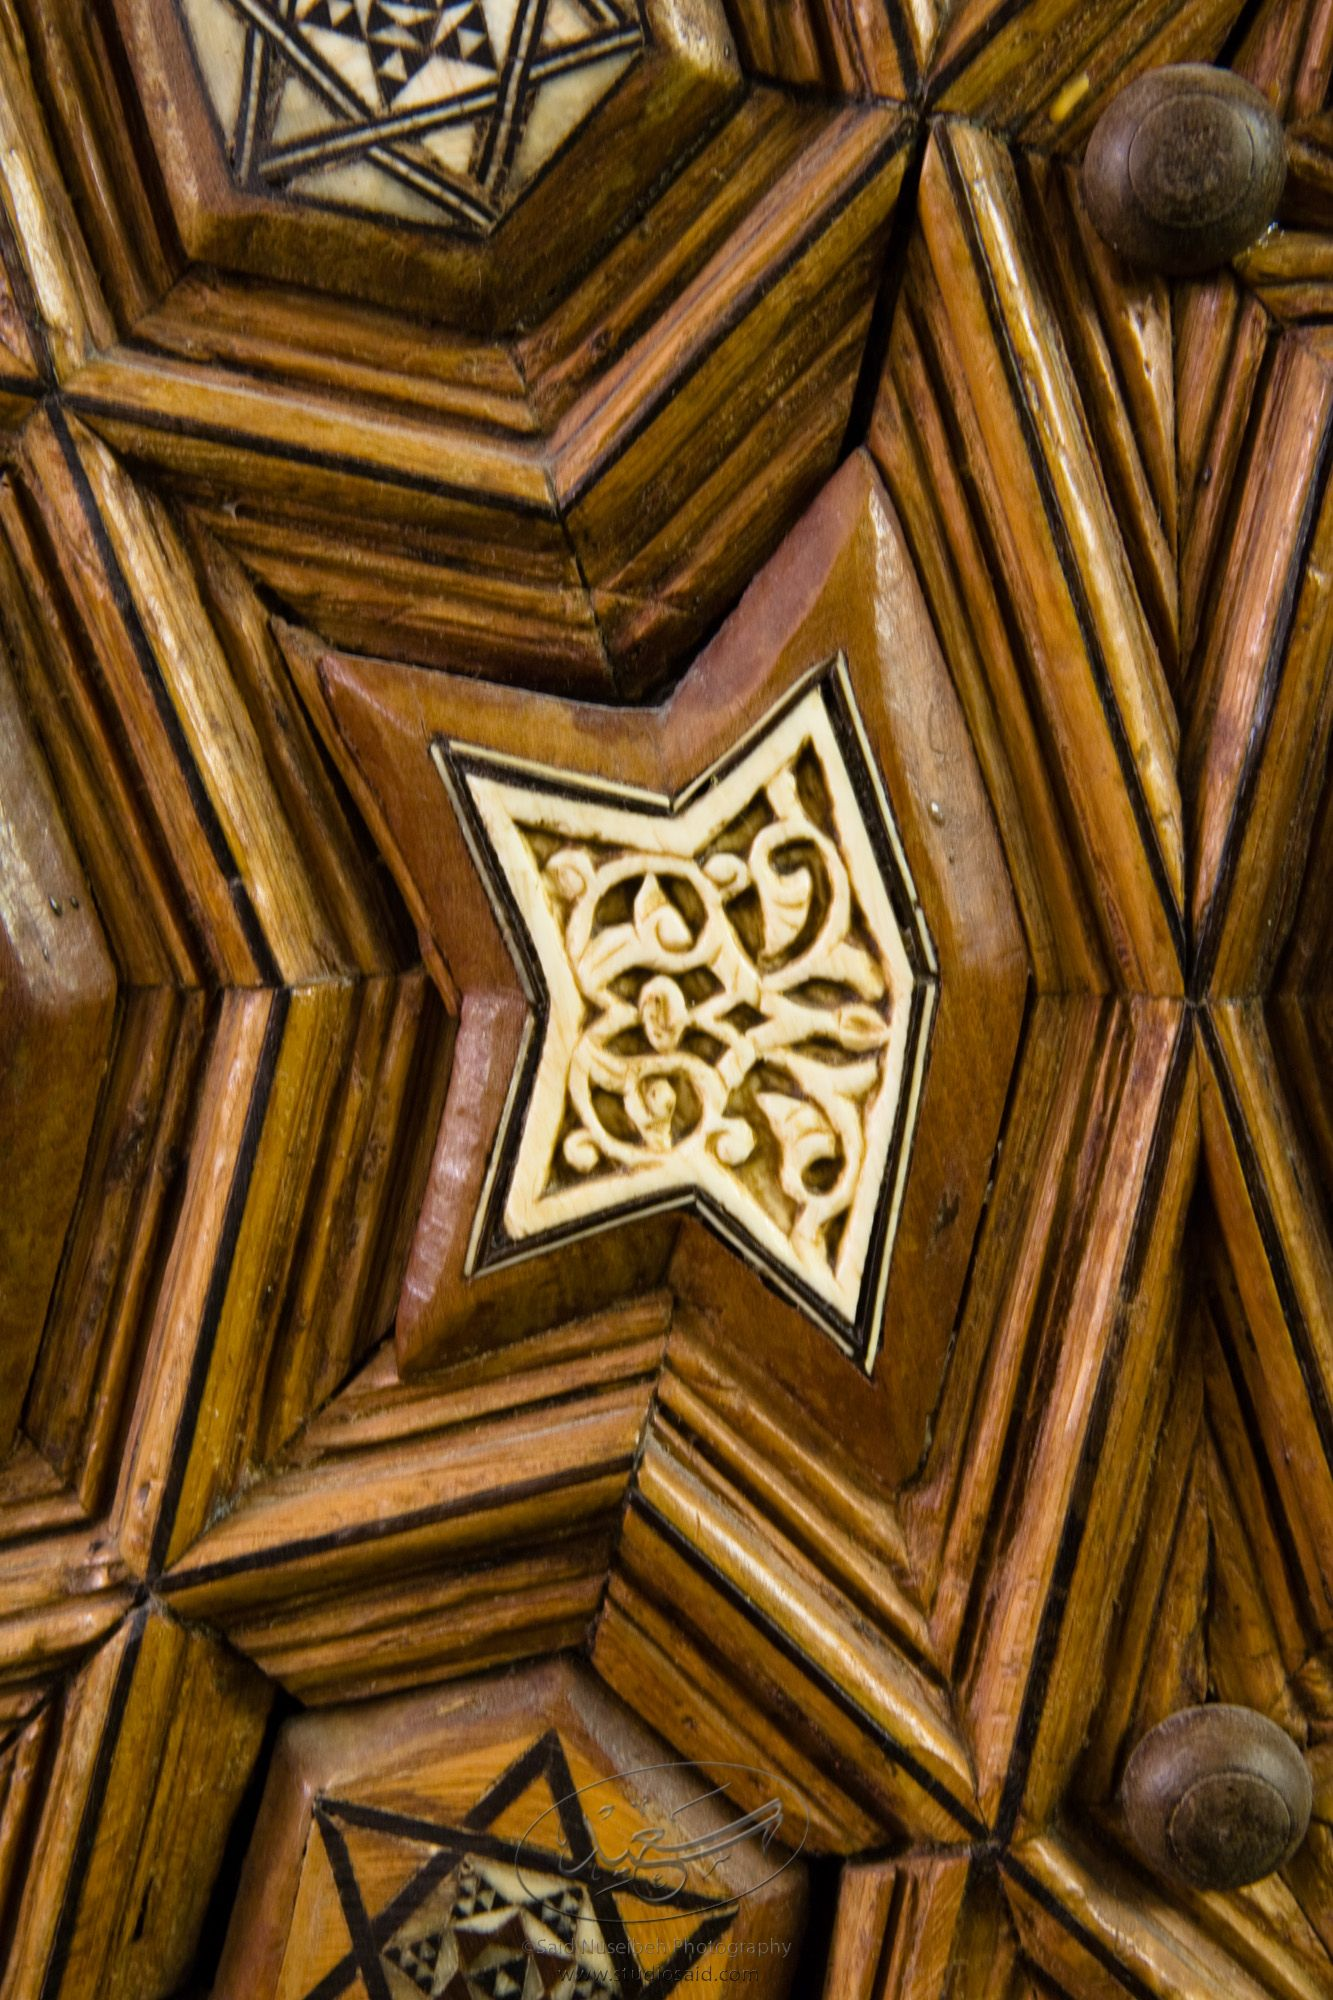 """Minbar, Carved Woodwork and Inlay Detail""The late-13th / early-14th c. Mamluk minbar, or pulpit, of Sultan al-Nasir Muhammad, the ninth Mamluk Sultan from Cairo and son of Qalawun. The minbar was located in the Umayyad Mosque in Aleppo, Haleb, prior to its damage and disappearance in May 2013."